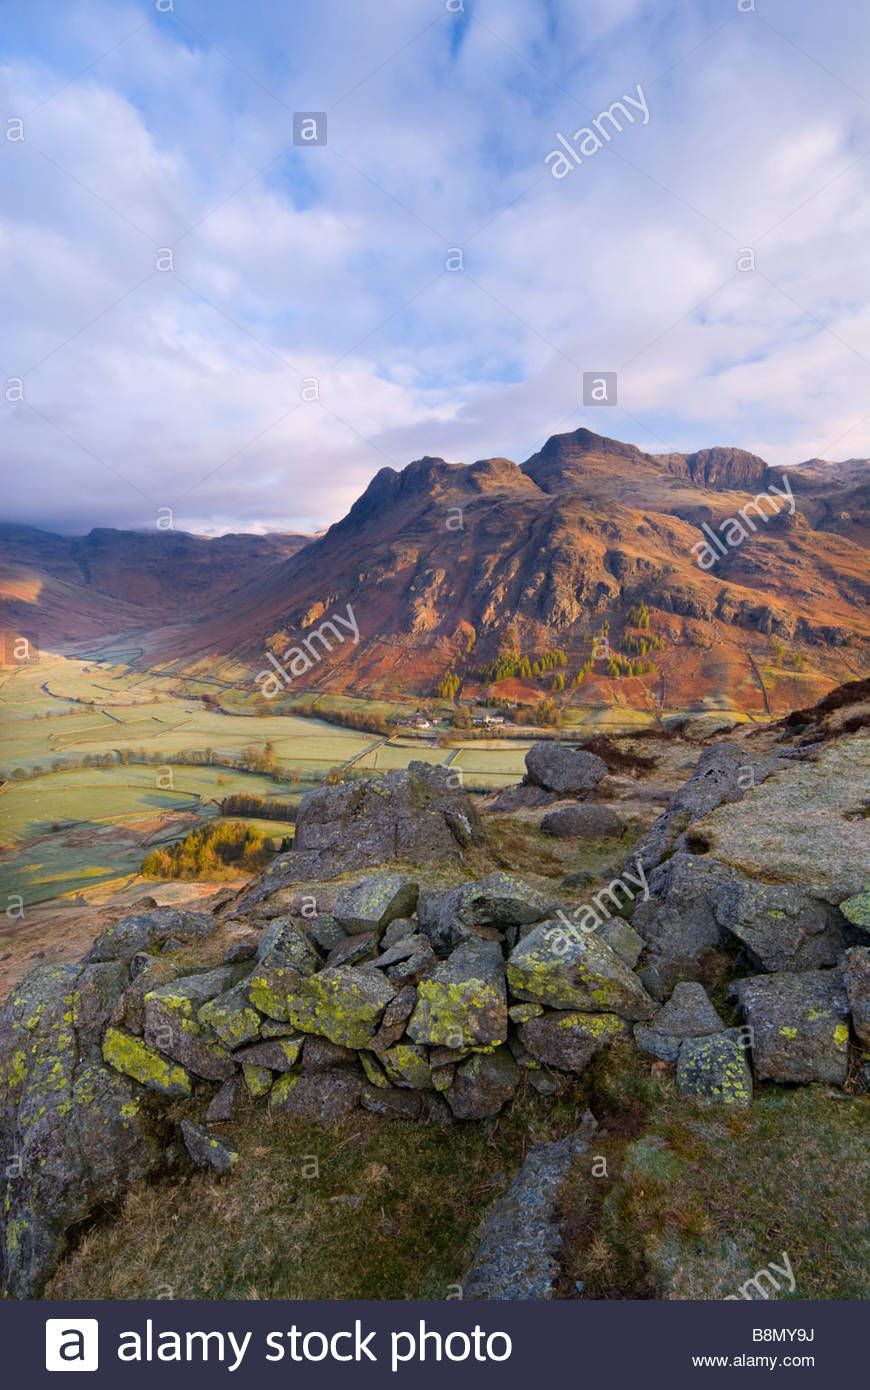 The Langdale Pikes and Valley, from Side Pike, Lake District National Park, Cumbria, England, UK. - Stock Image